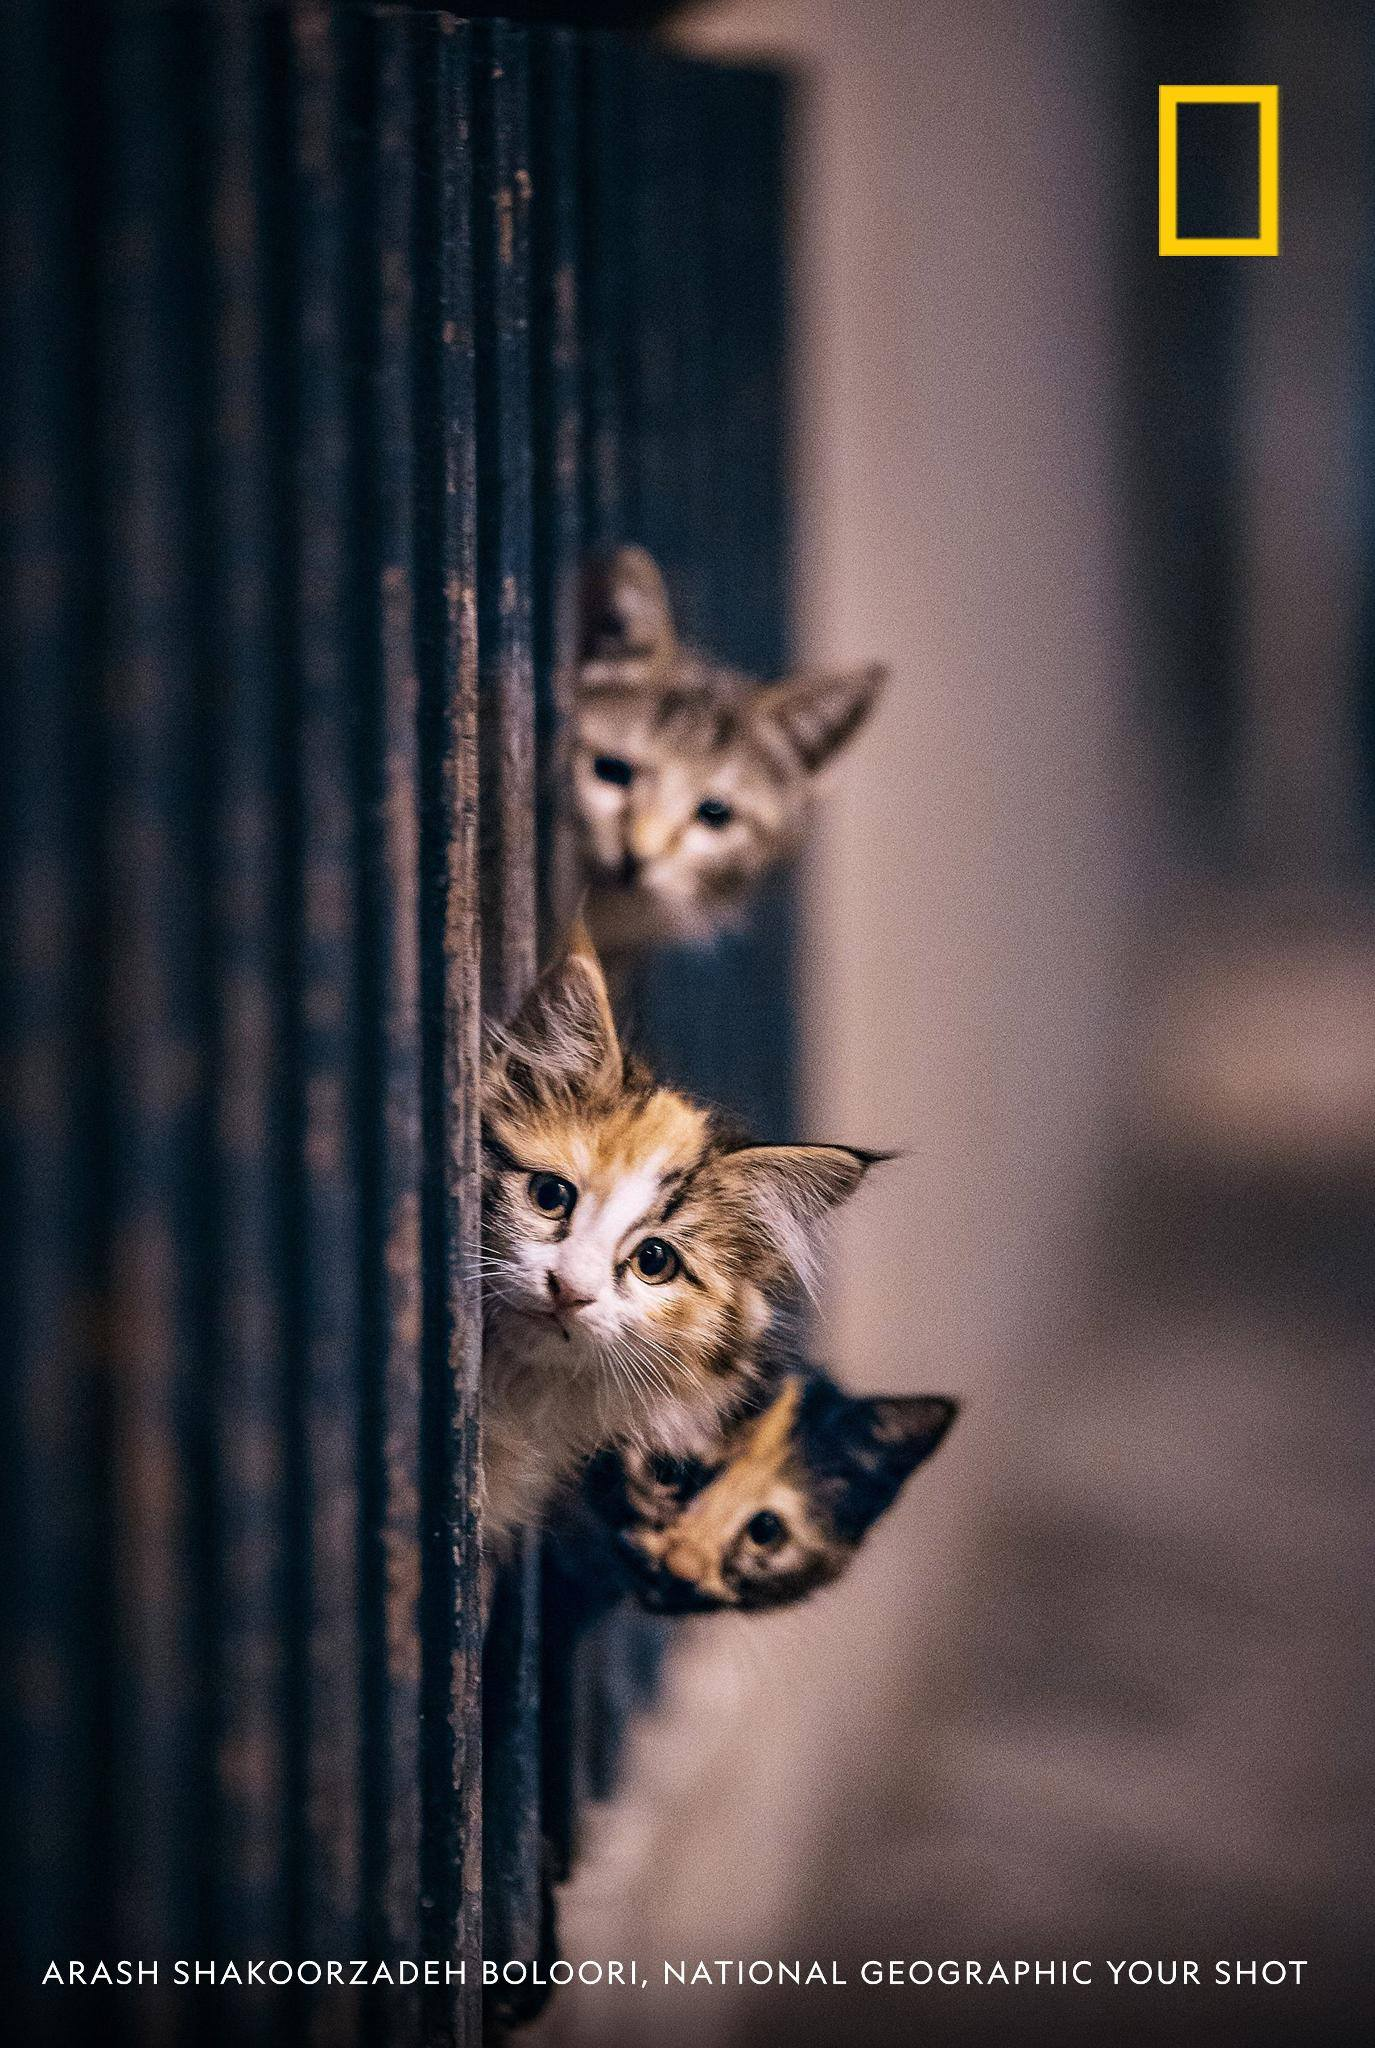 Happy National Cat Day! Photographer Arash Shakoorzadeh Boloori caught a quick moment with these curious cats in Tehran, Iran. What are some of your favorite photos of felines? https://on.natgeo.com/2D9TZNb